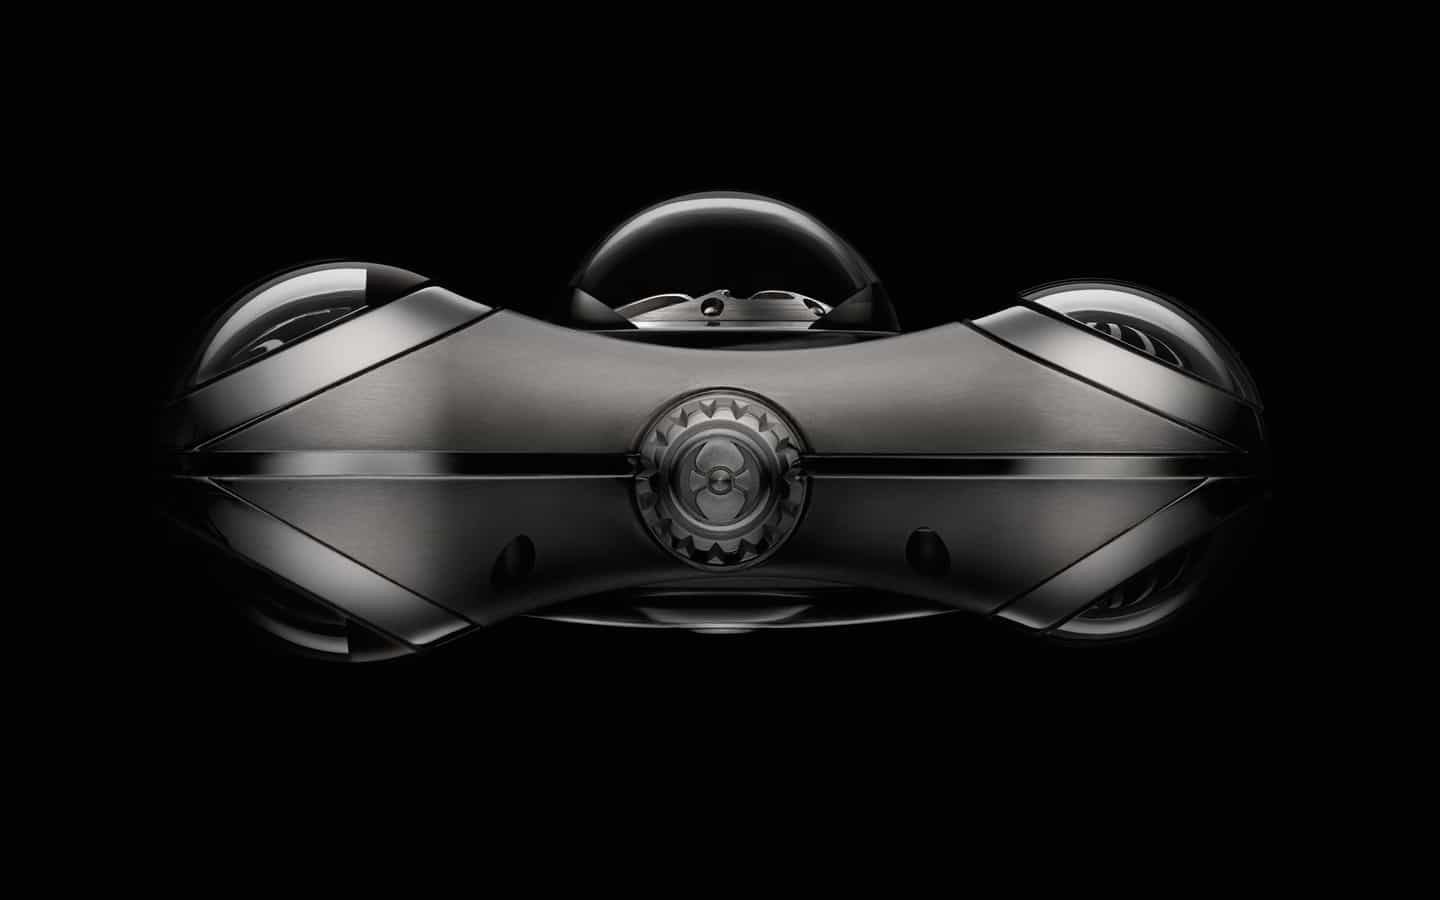 MB&F Horological Machine No.6 (HM6) Space Pirate Watch Side View